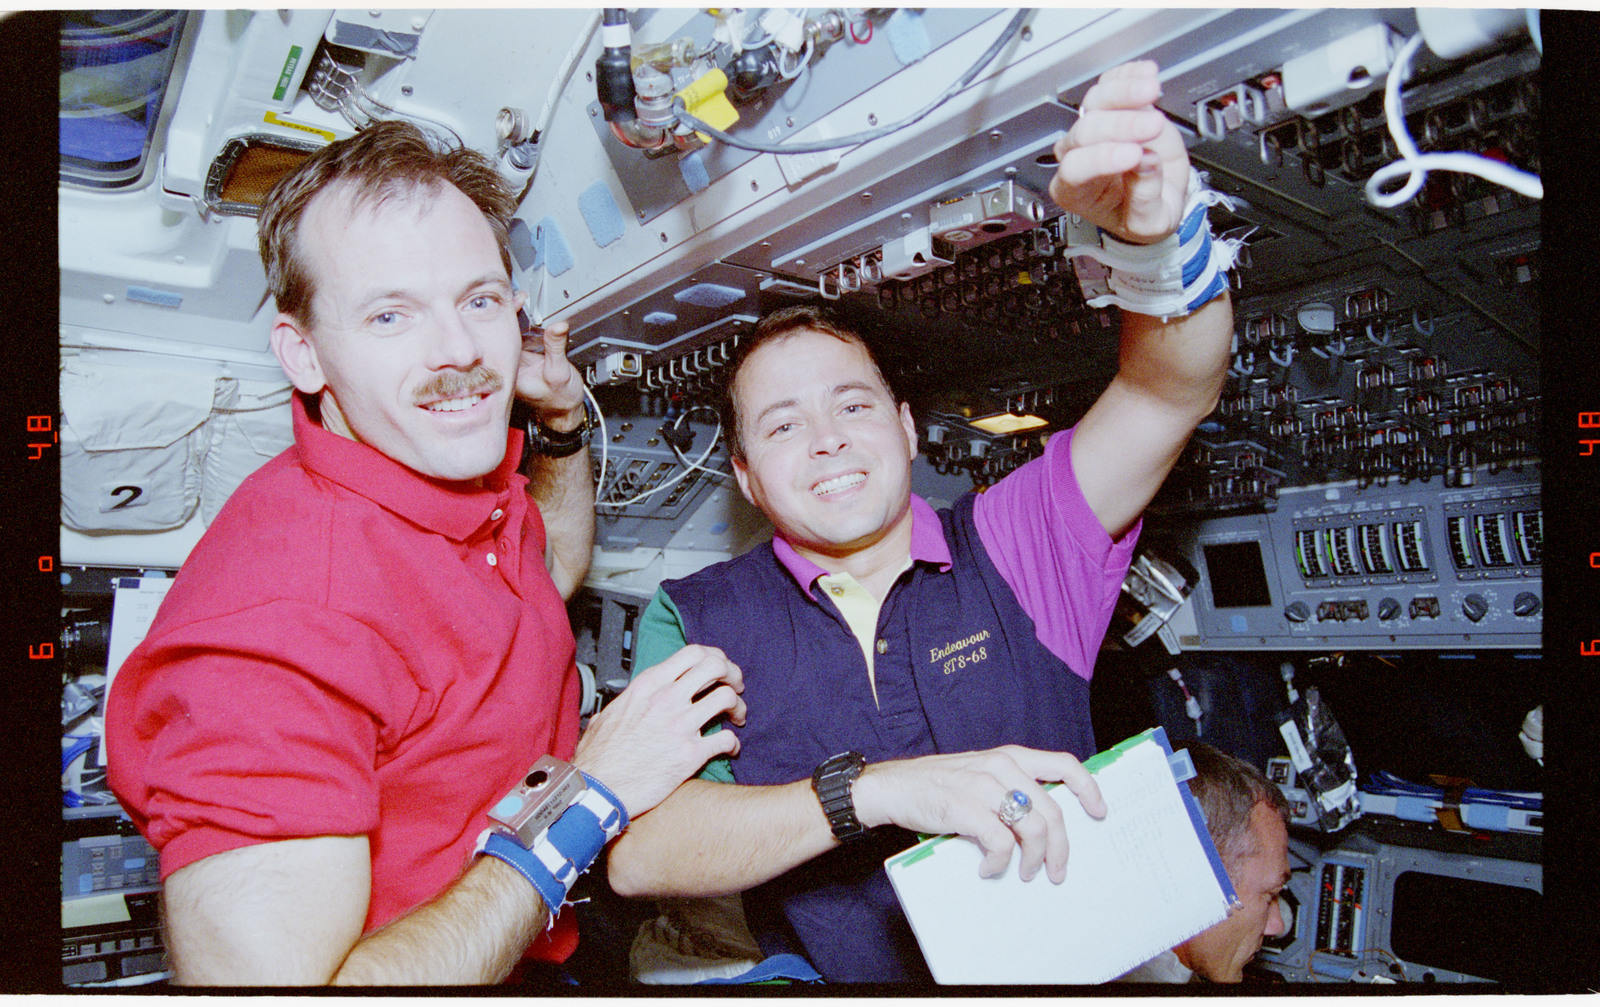 STS068-38-009 - STS-068 - STS-68 crewmembers  on the flight deck of the Endeavour